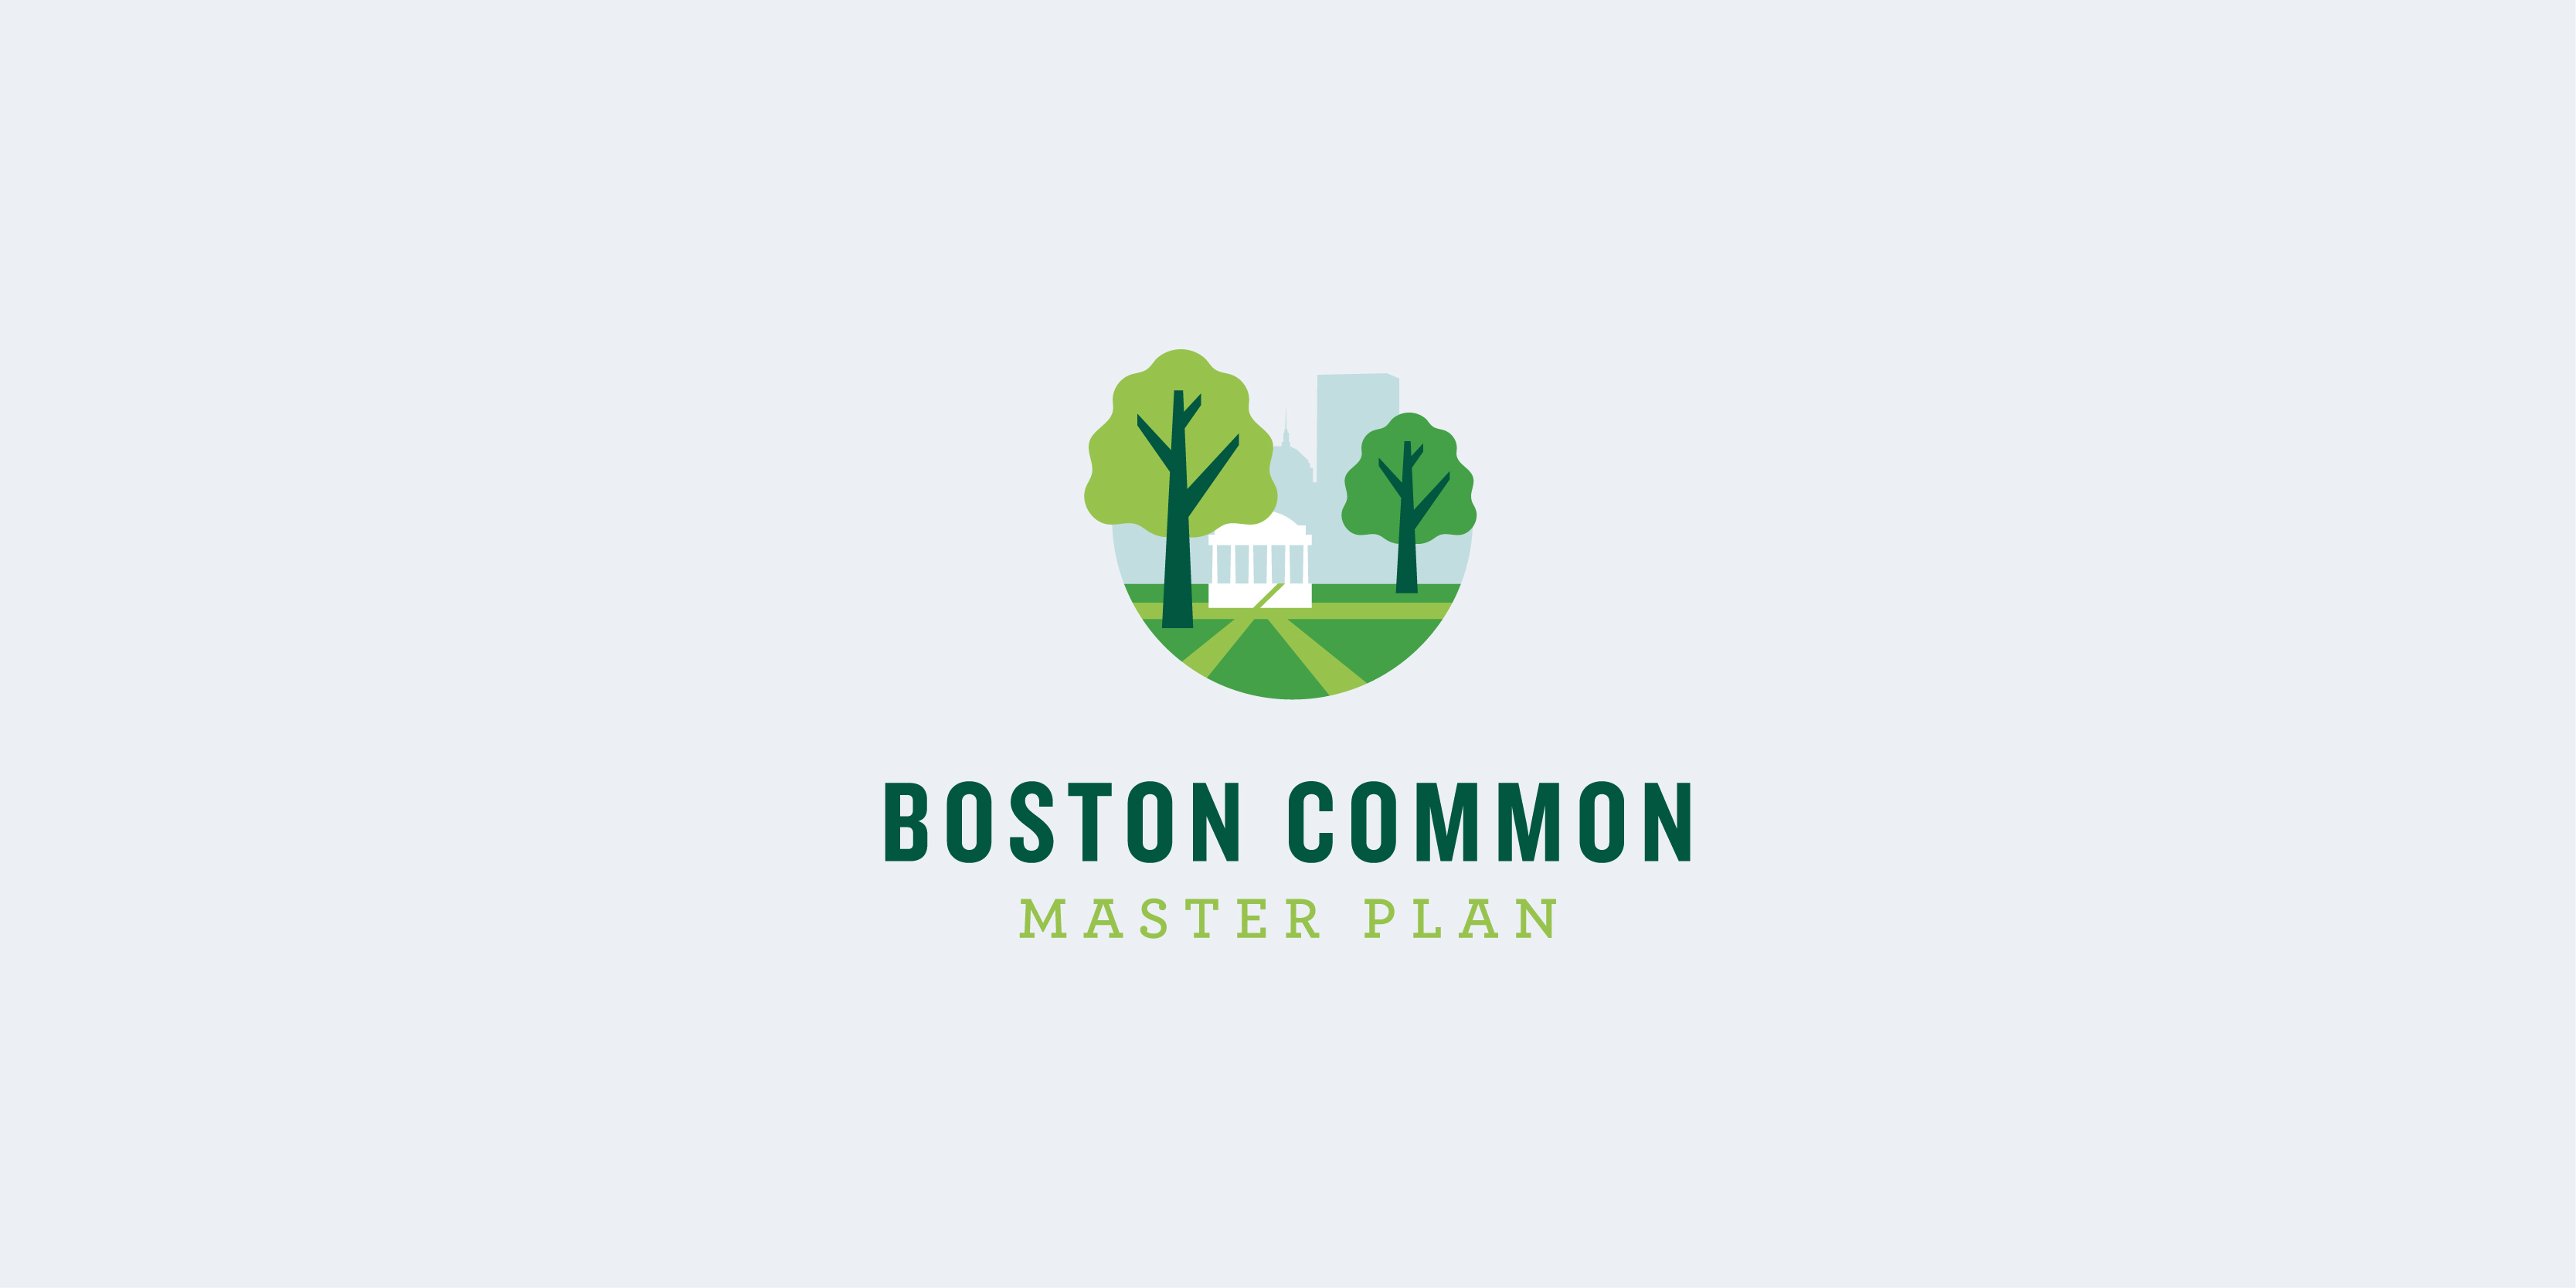 Boston Common Mater Plan Logo design